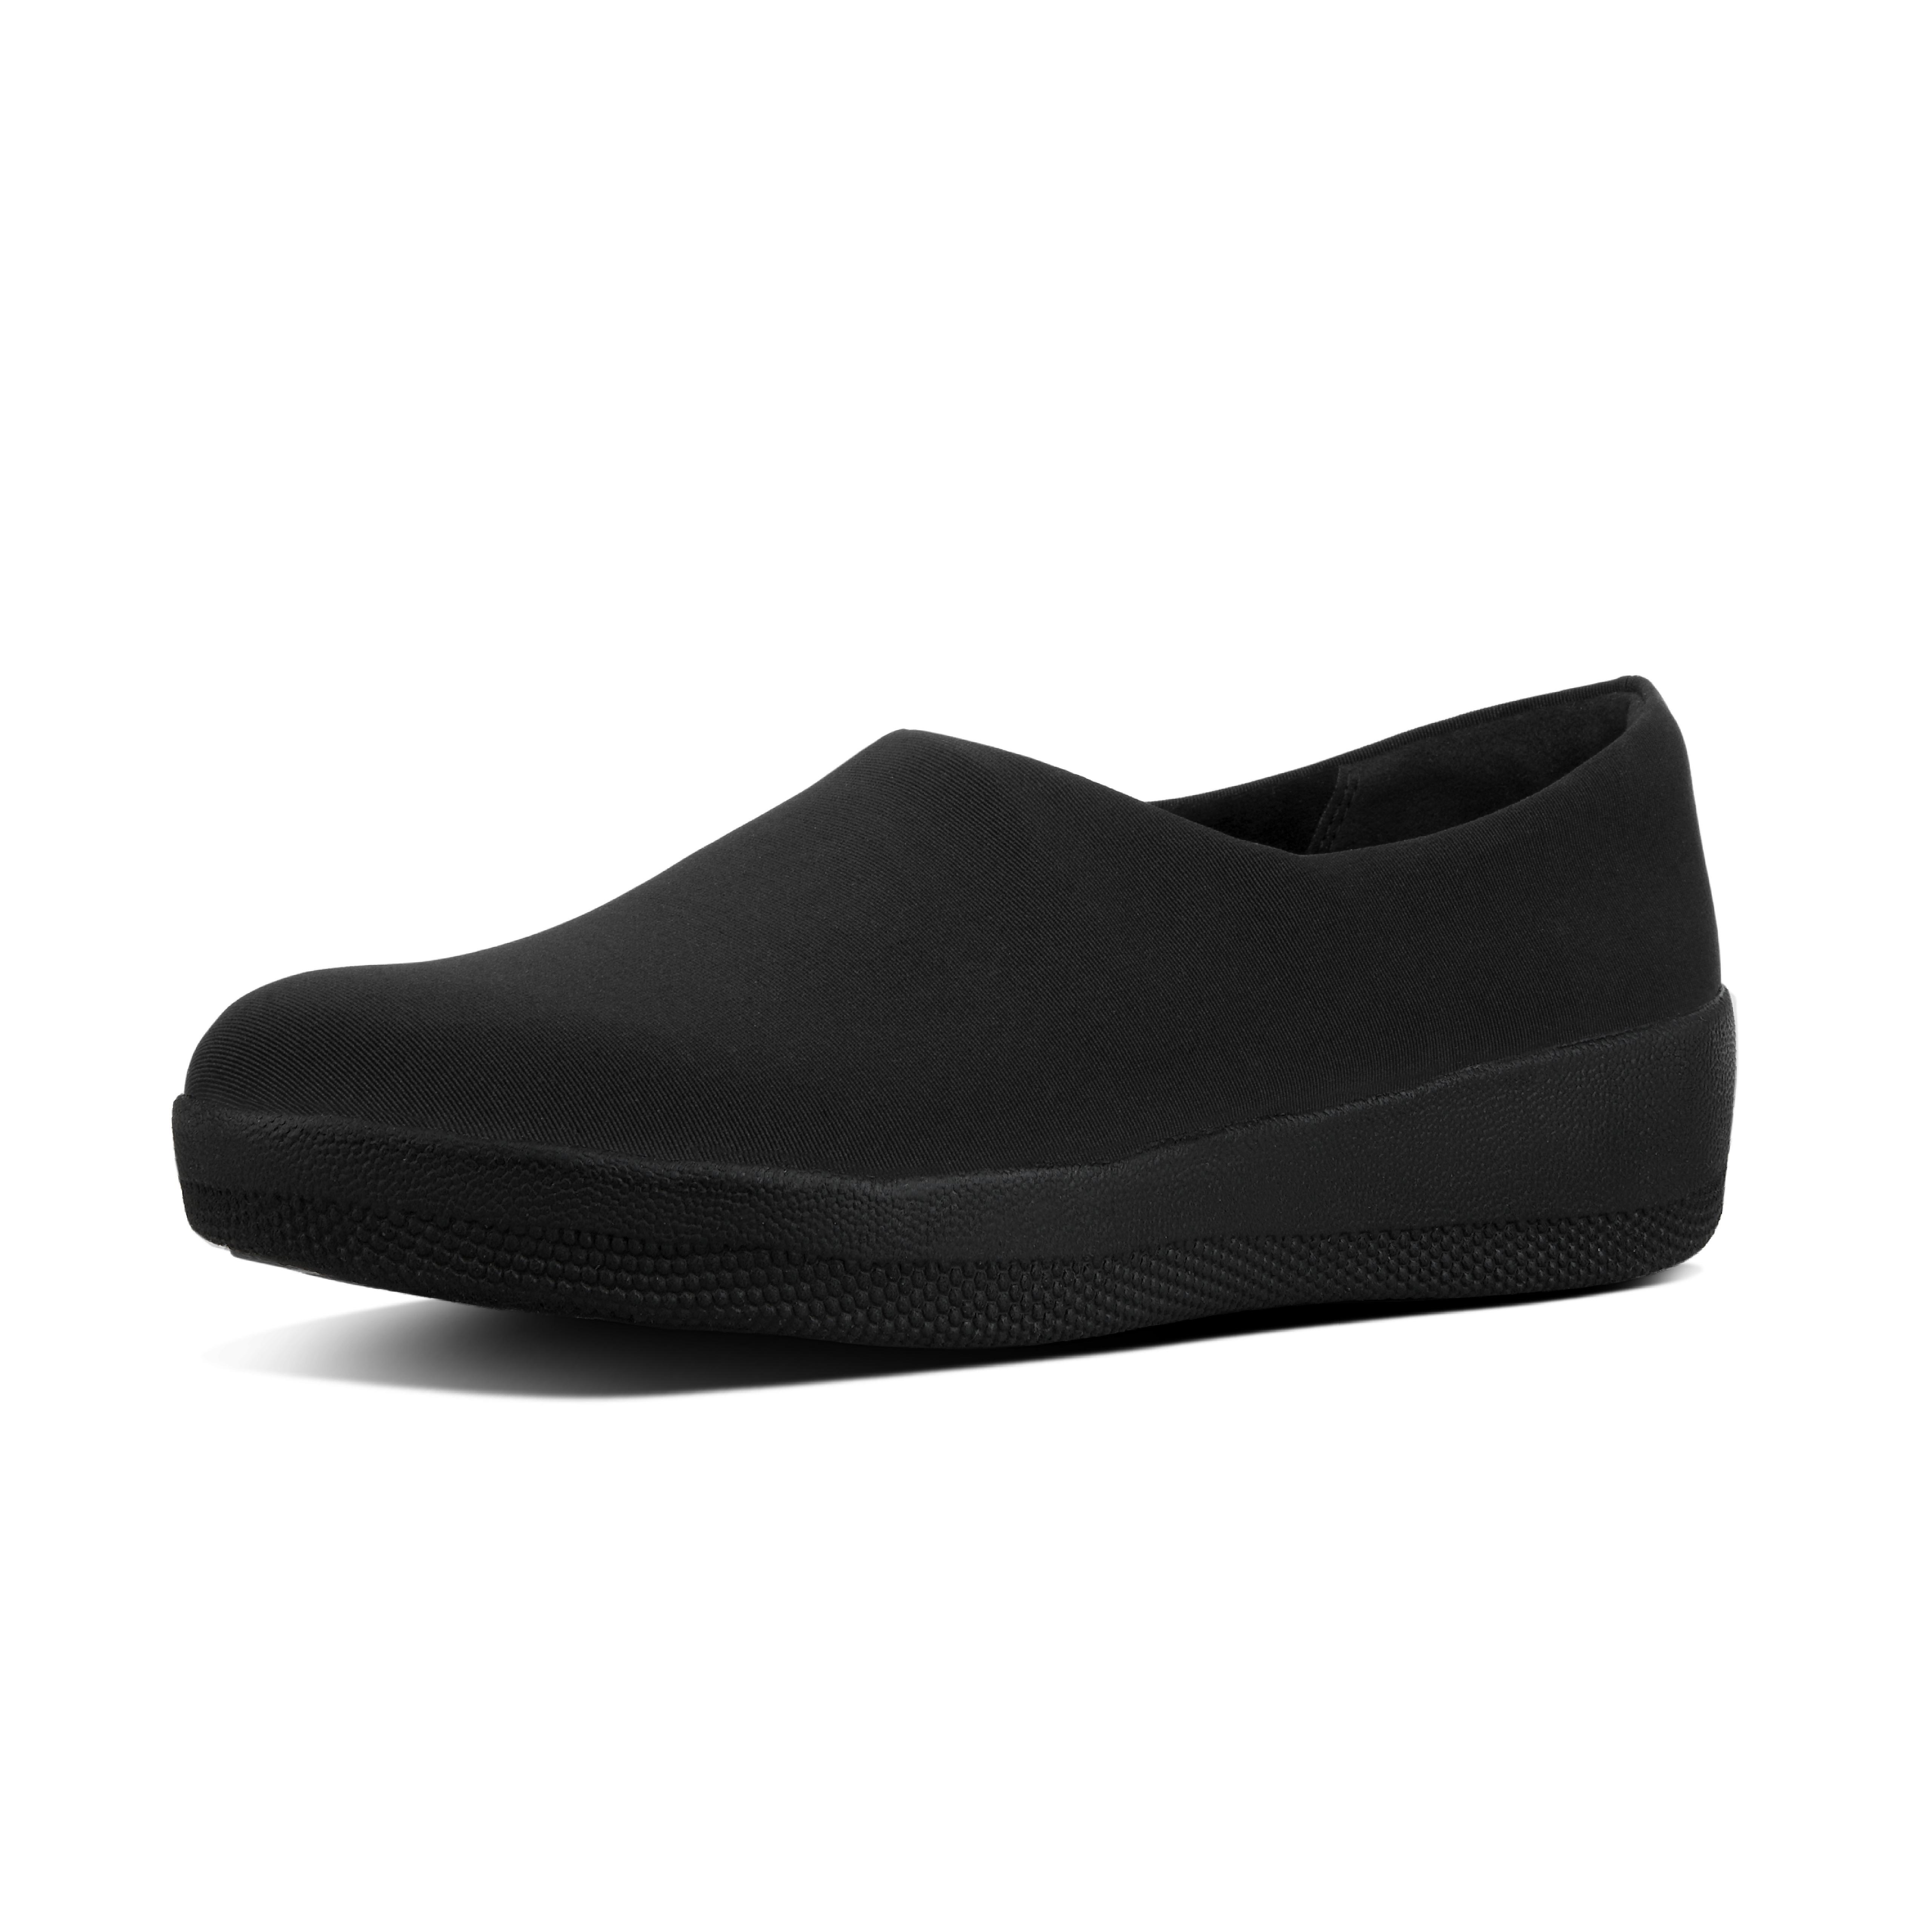 Simplicity at its best. Perfecting monochrome palettes - it's all in a day's work for these easy pull-on loafers. With a foot-hugging fit and on our lightweight, cushioned Supercom FF midsoles, they're supercomfortable too.